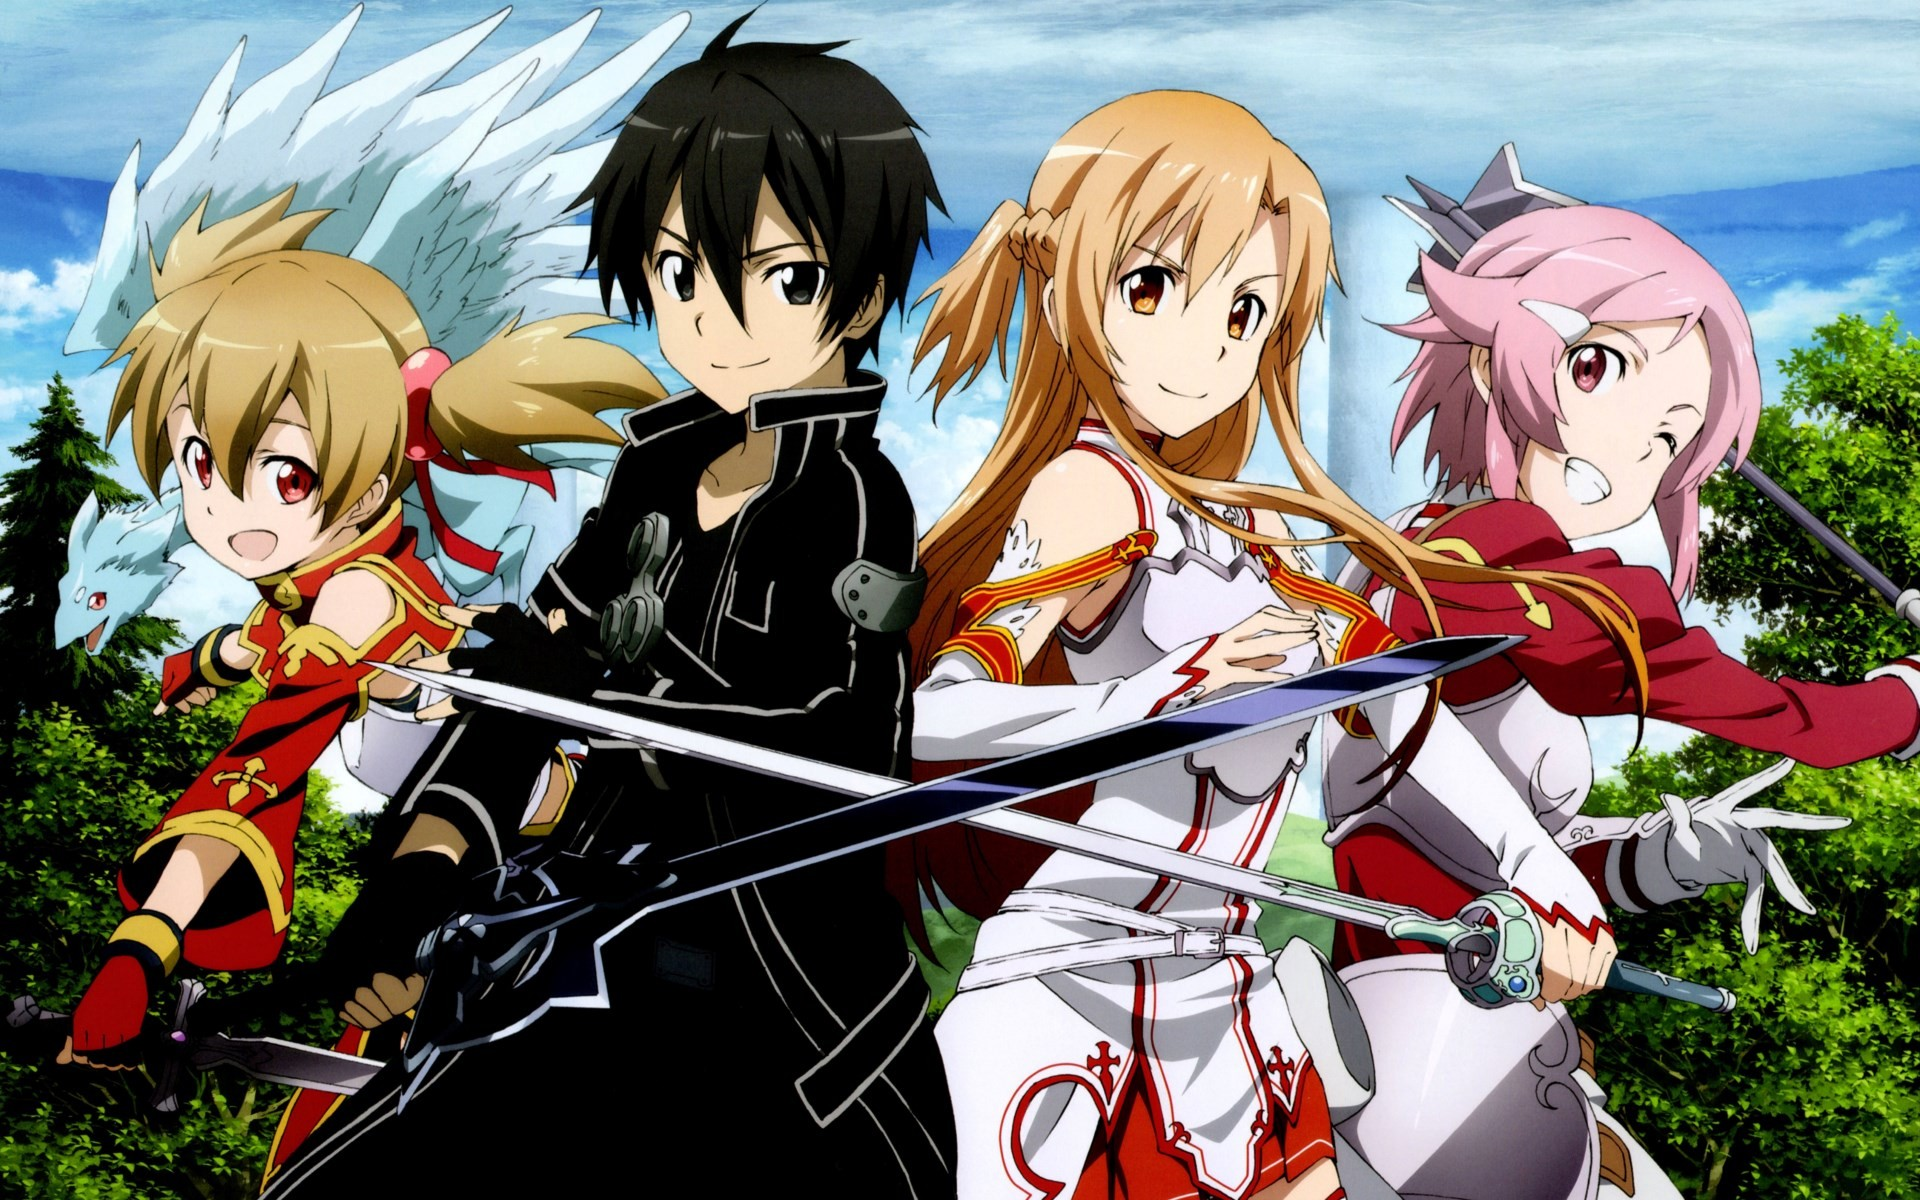 Silica,Kirito,Asuna and Lisbeth Full HD Wallpaper and ...